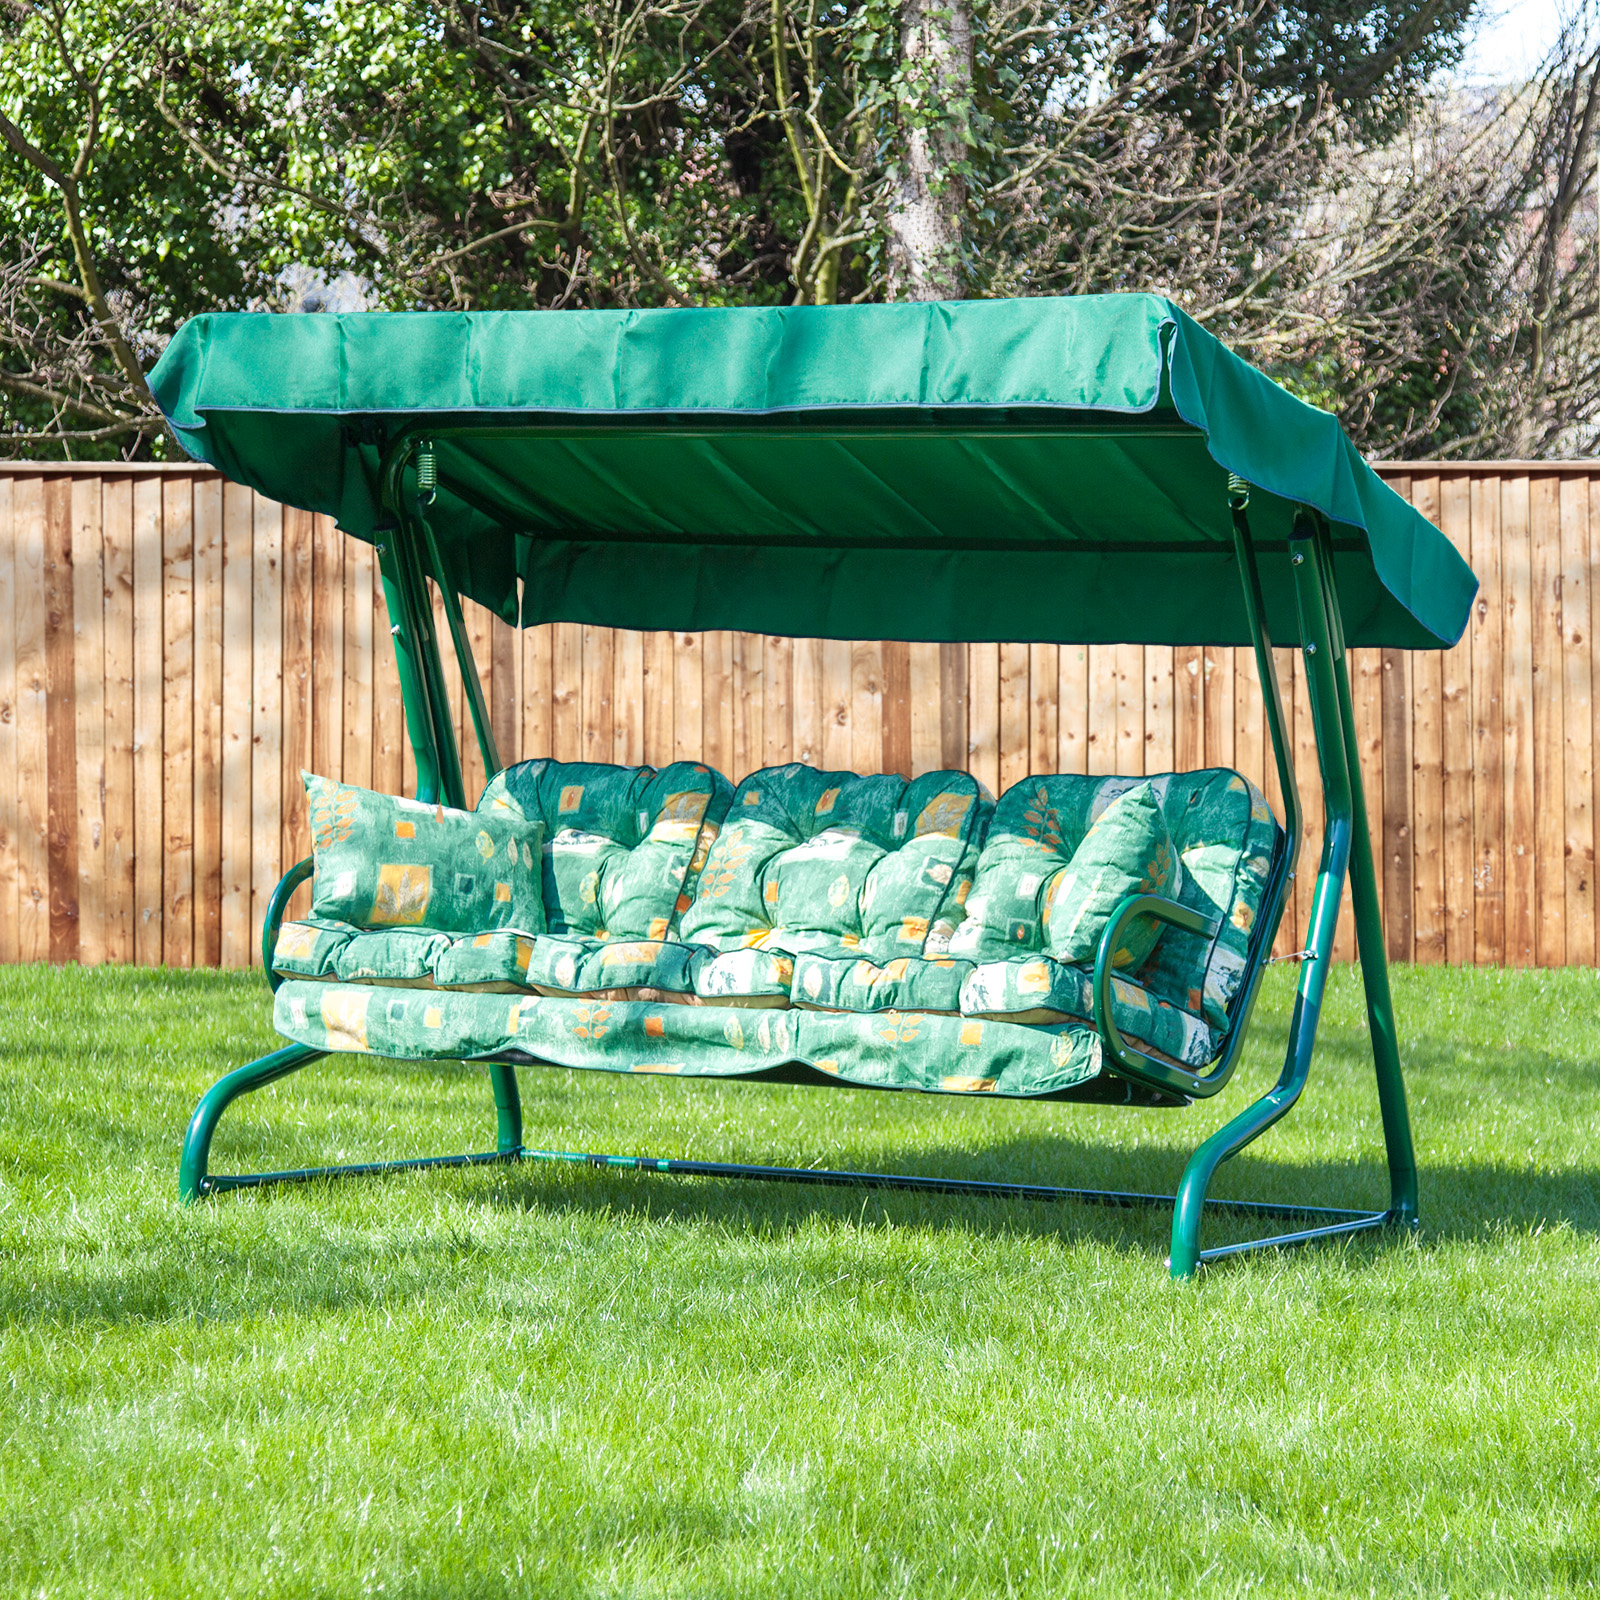 Garden 3 Seater Replacement Swing Seat Hammock Cushion Set